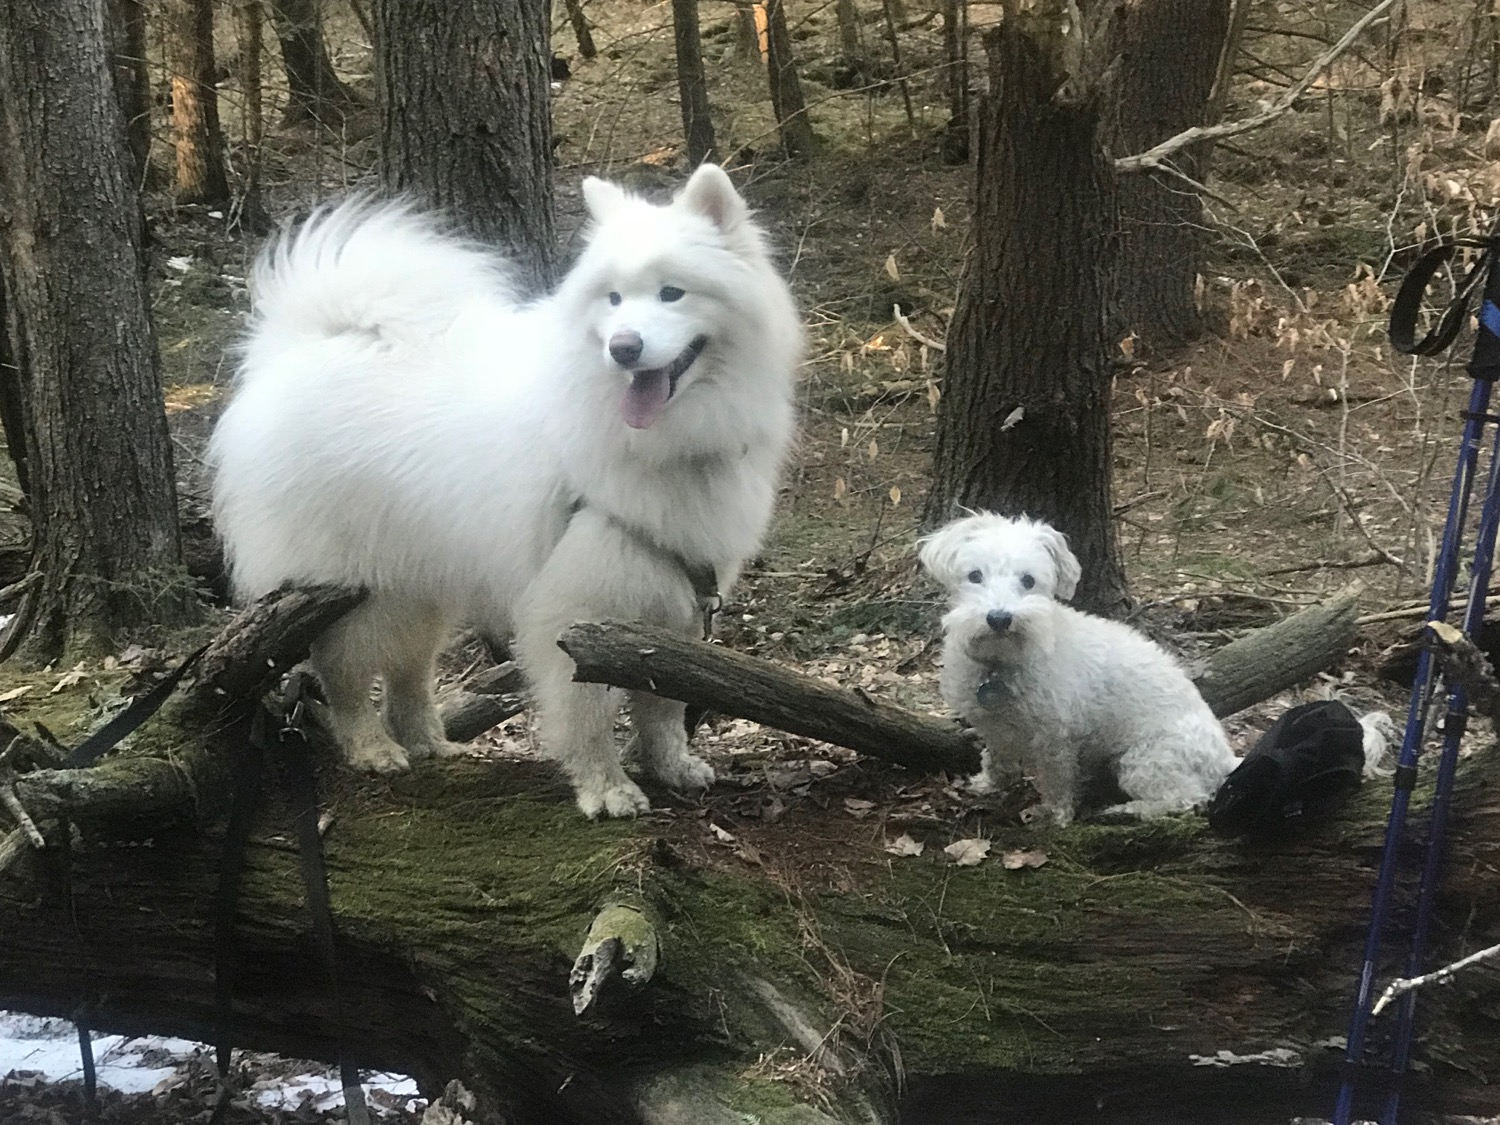 Yurei and skip taking a hike